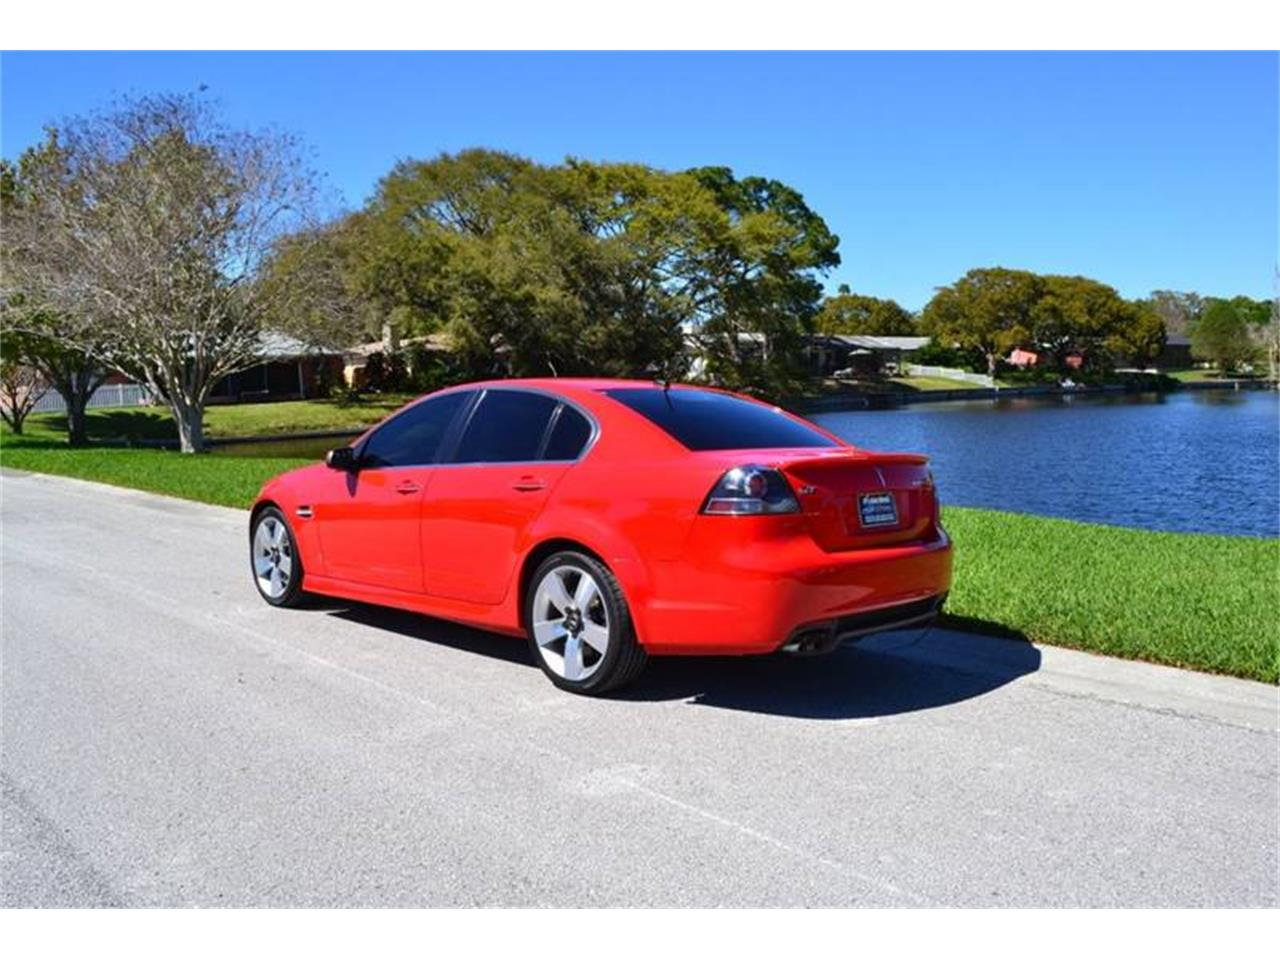 2009 Pontiac G8 for sale in Clearwater, FL – photo 3